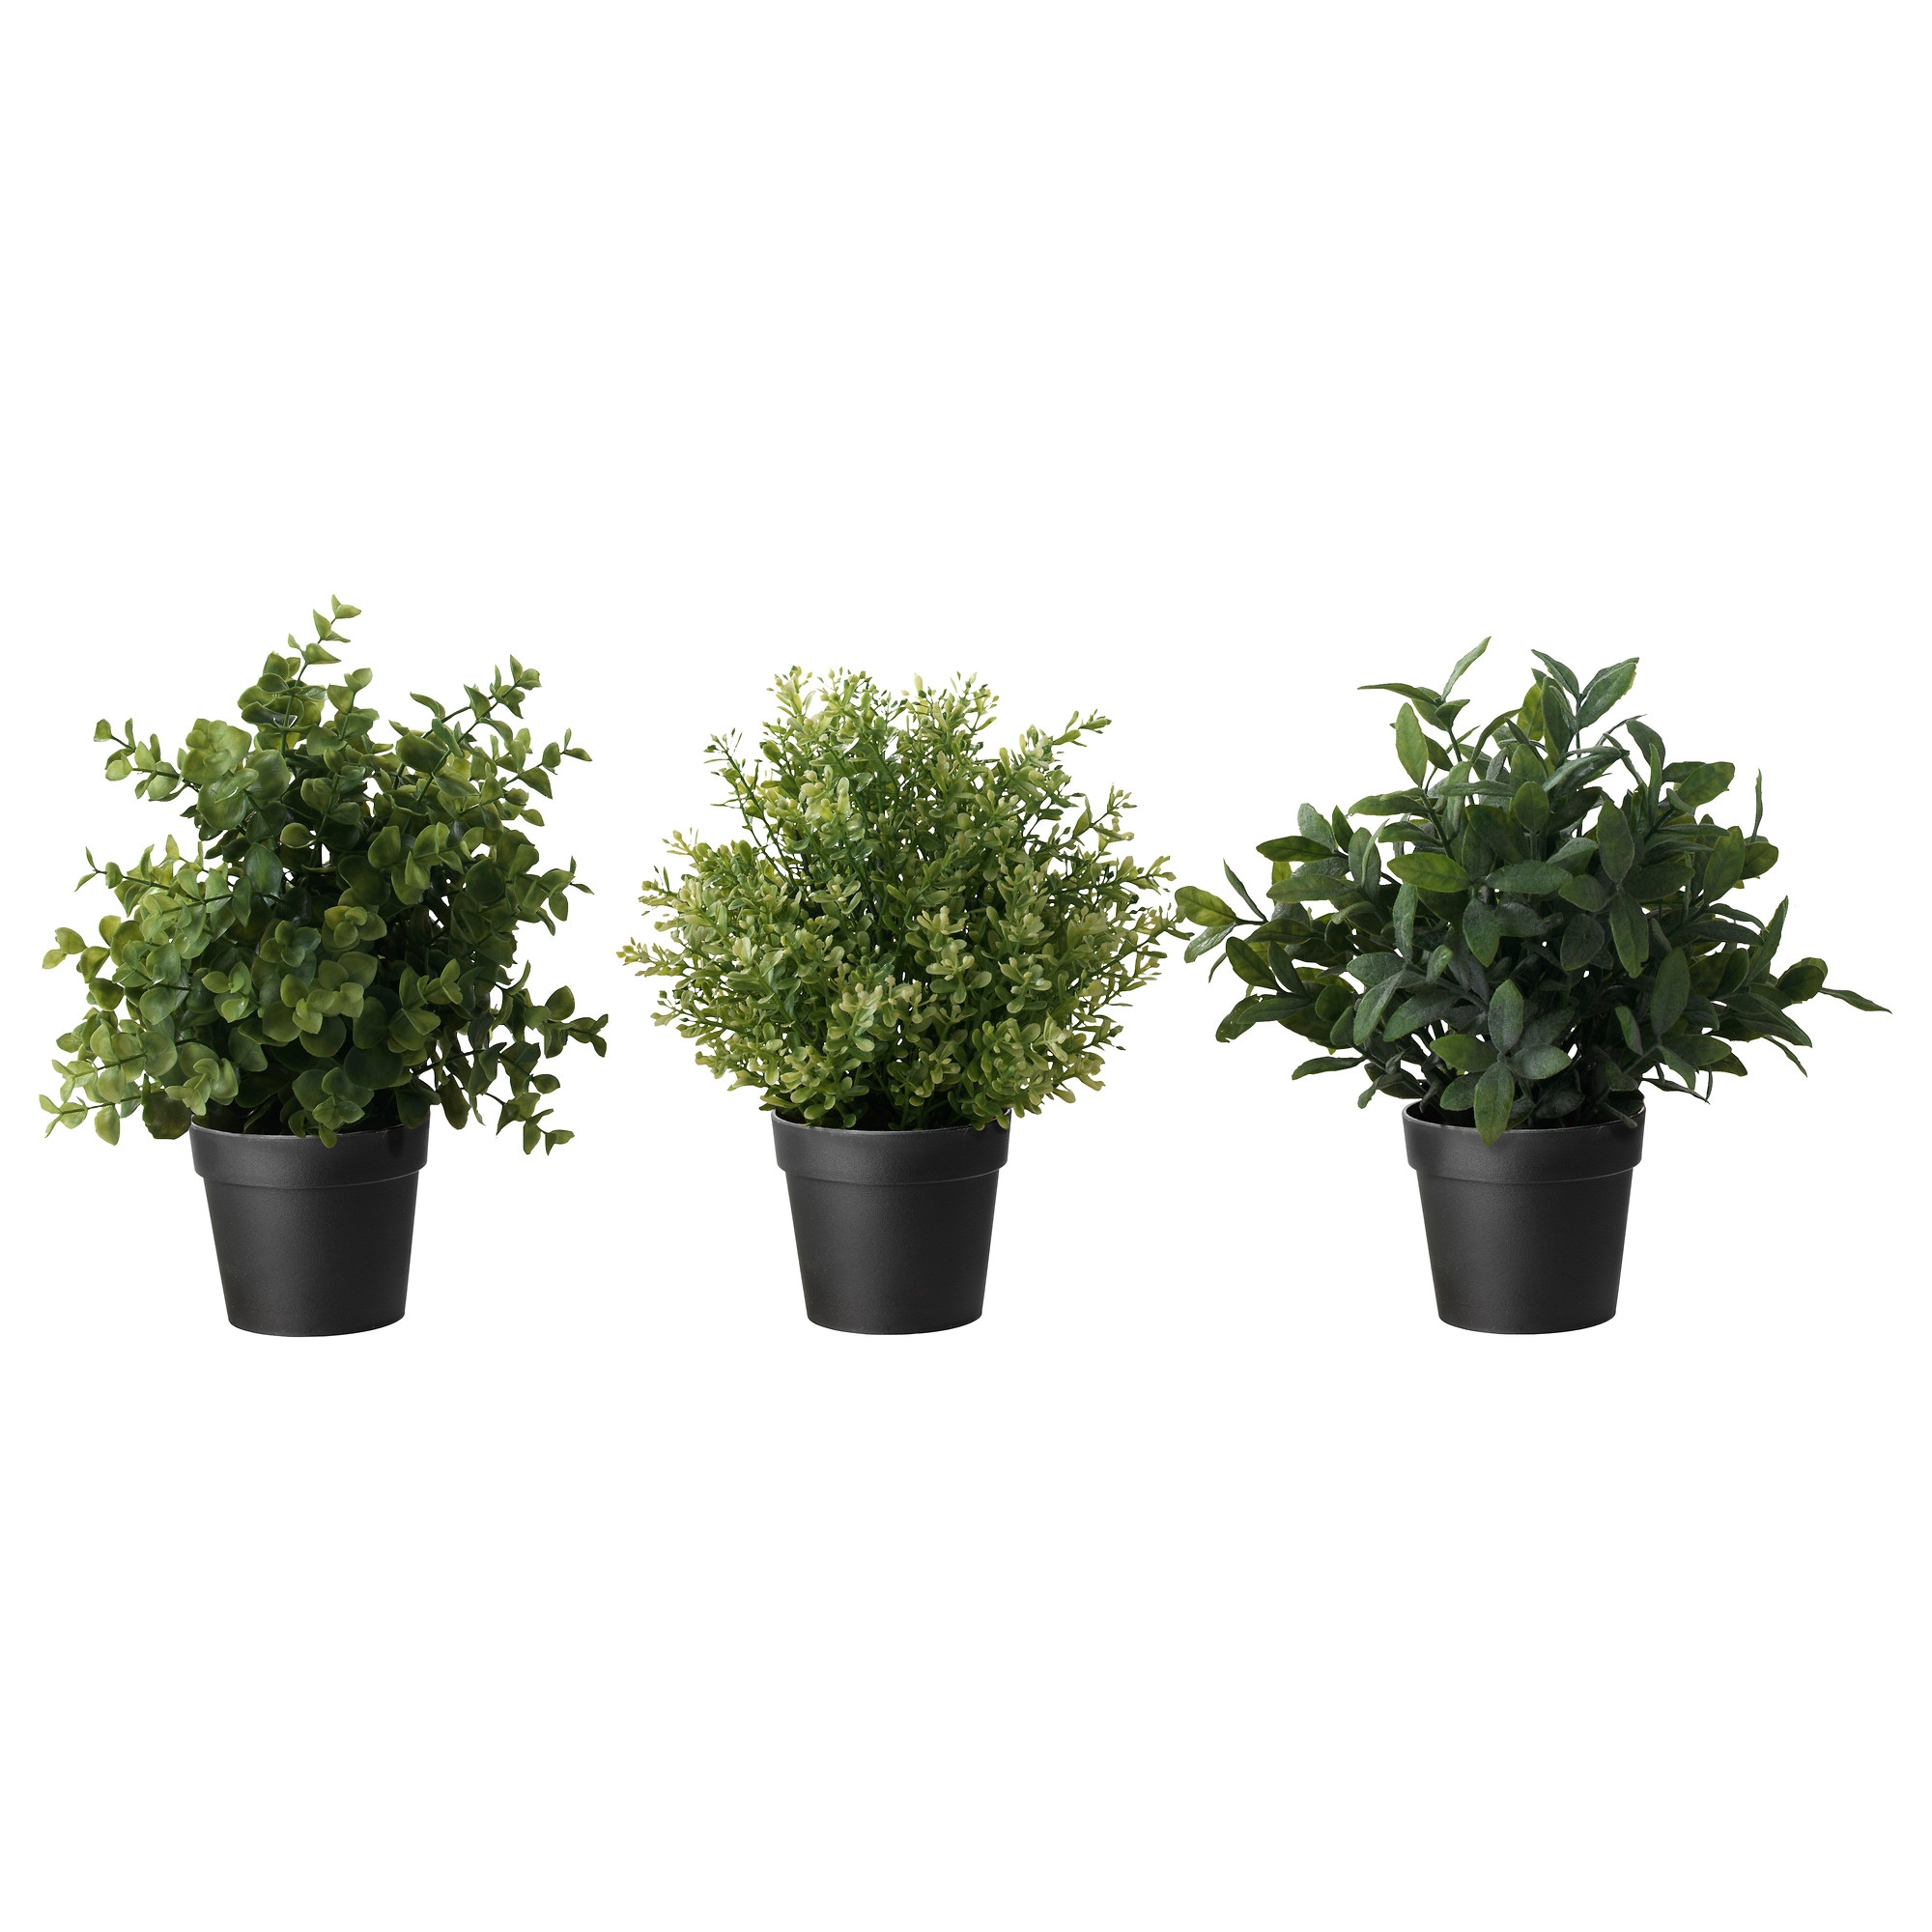 Artificial plants for kitchen - Inter Ikea Systems B V 1999 2017 Privacy Policy